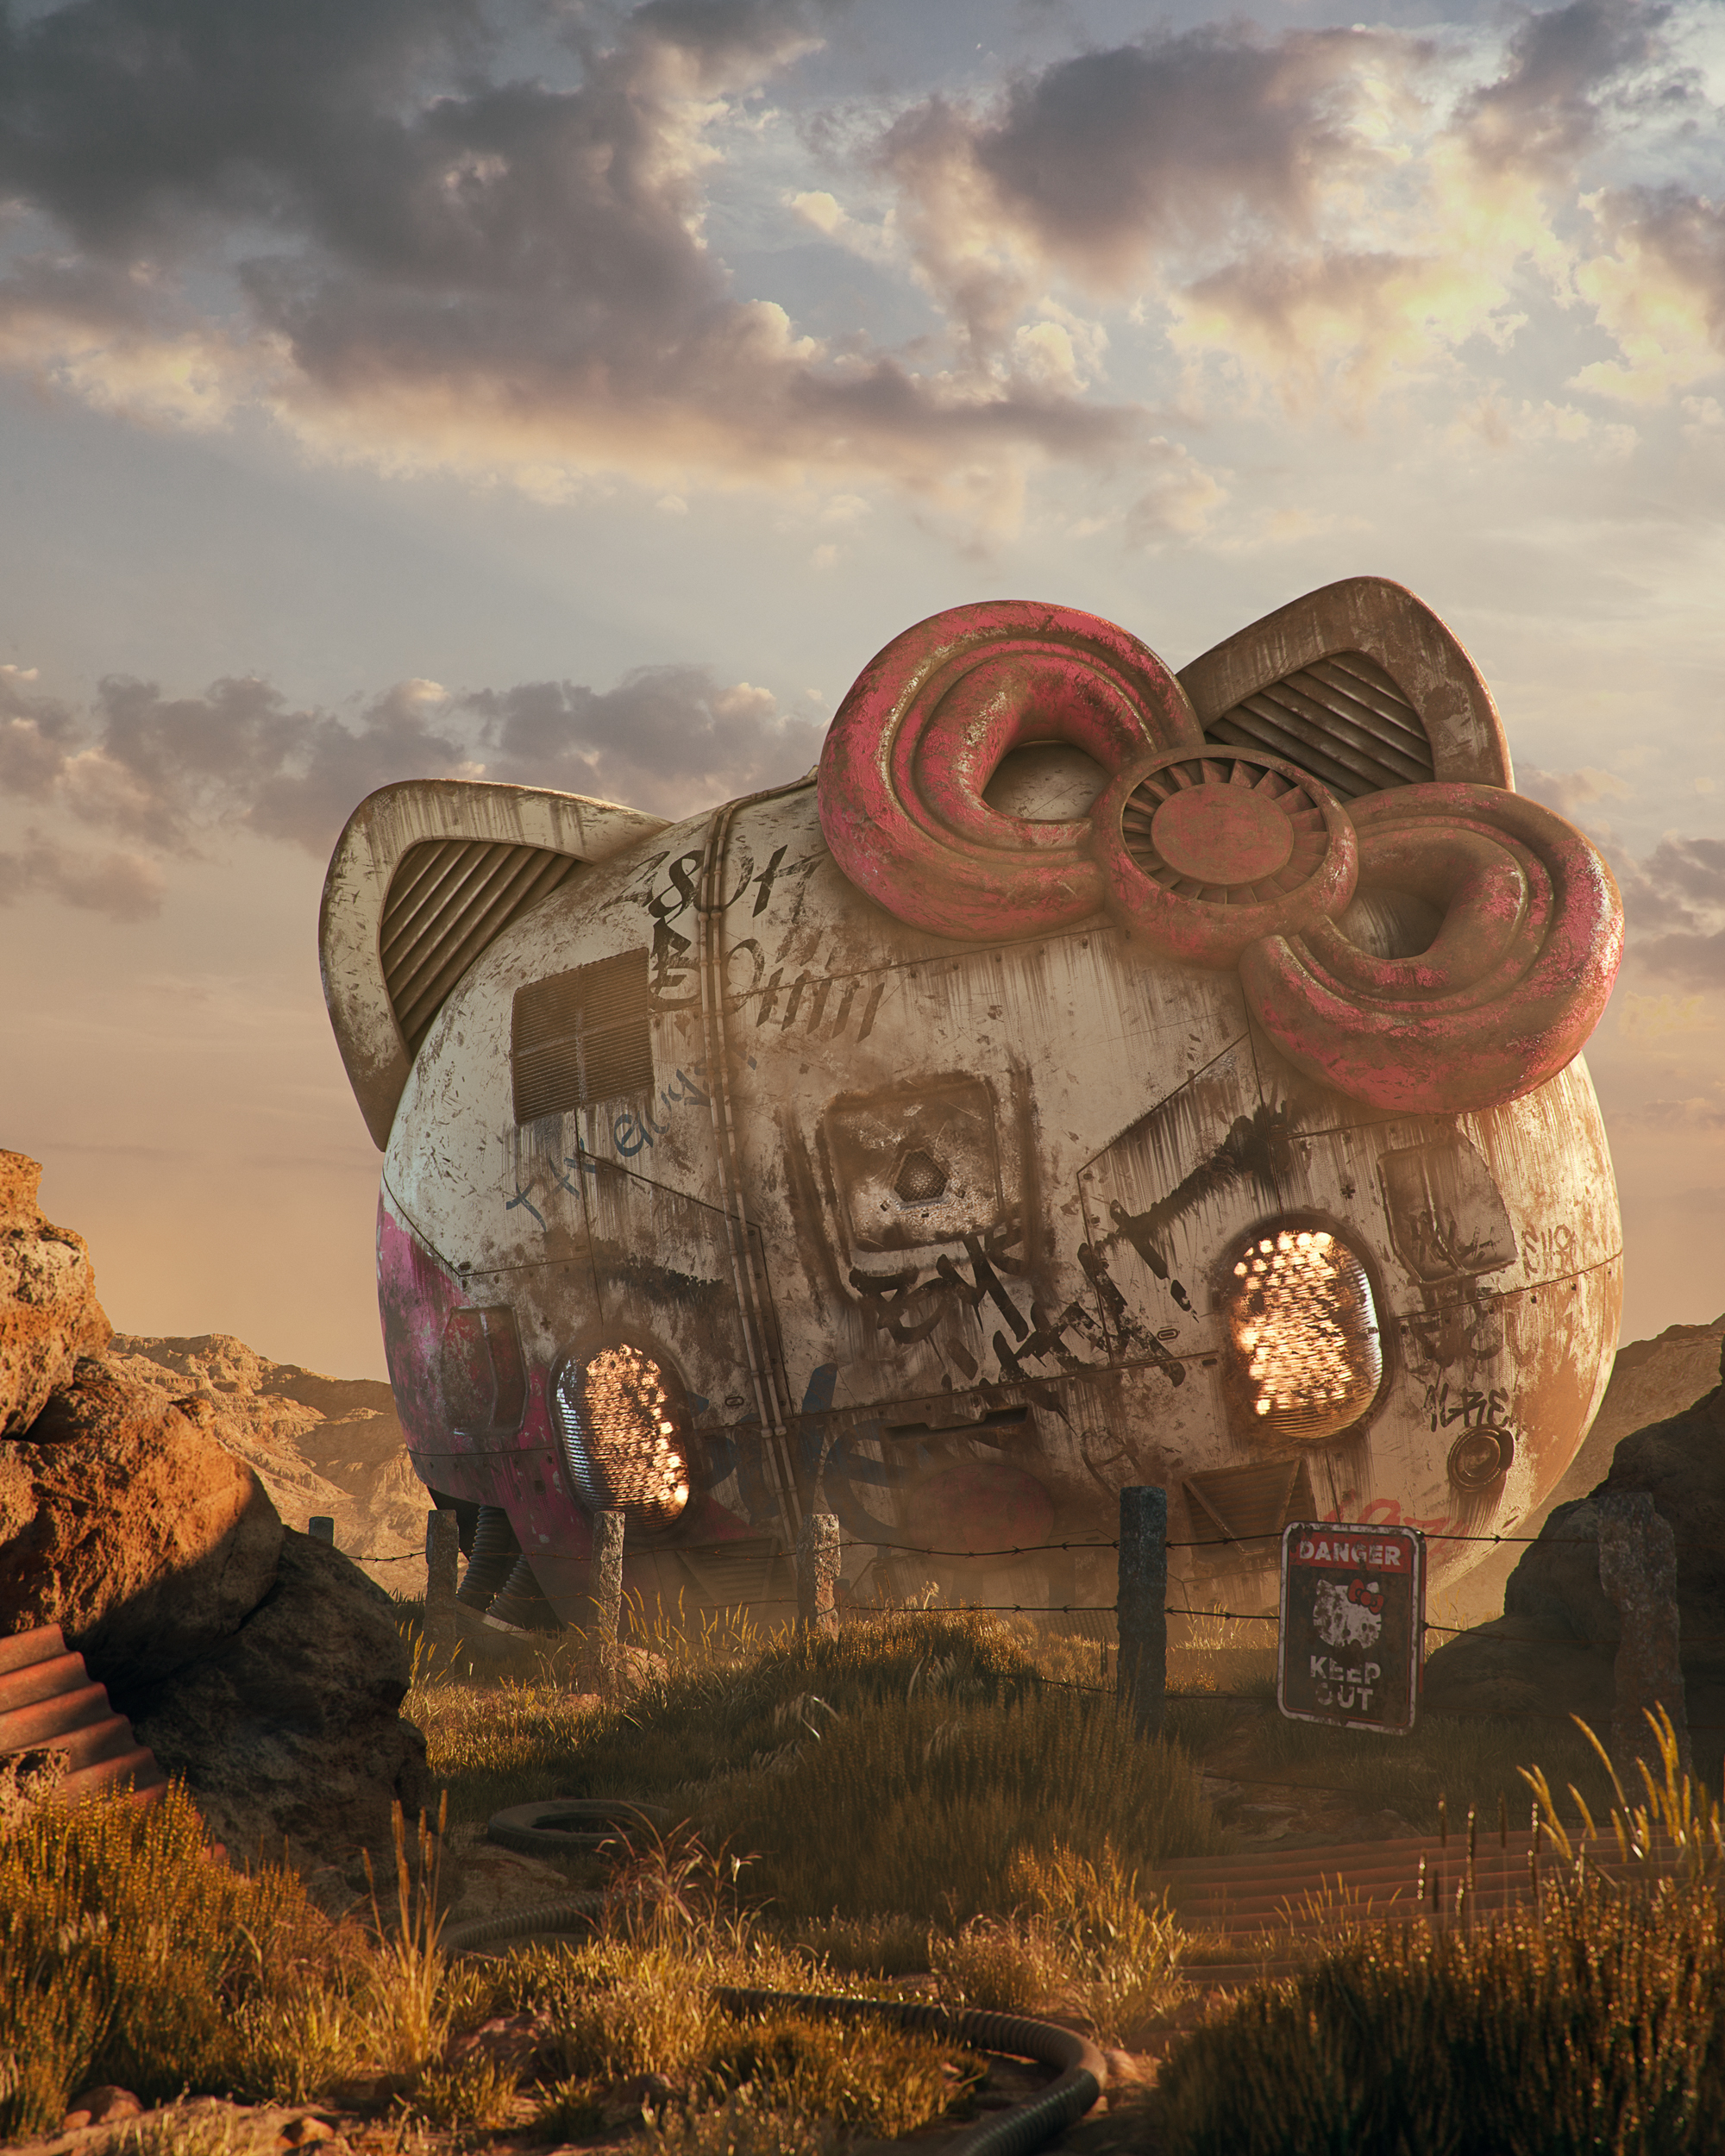 filip hodas pop culture dystopia 05